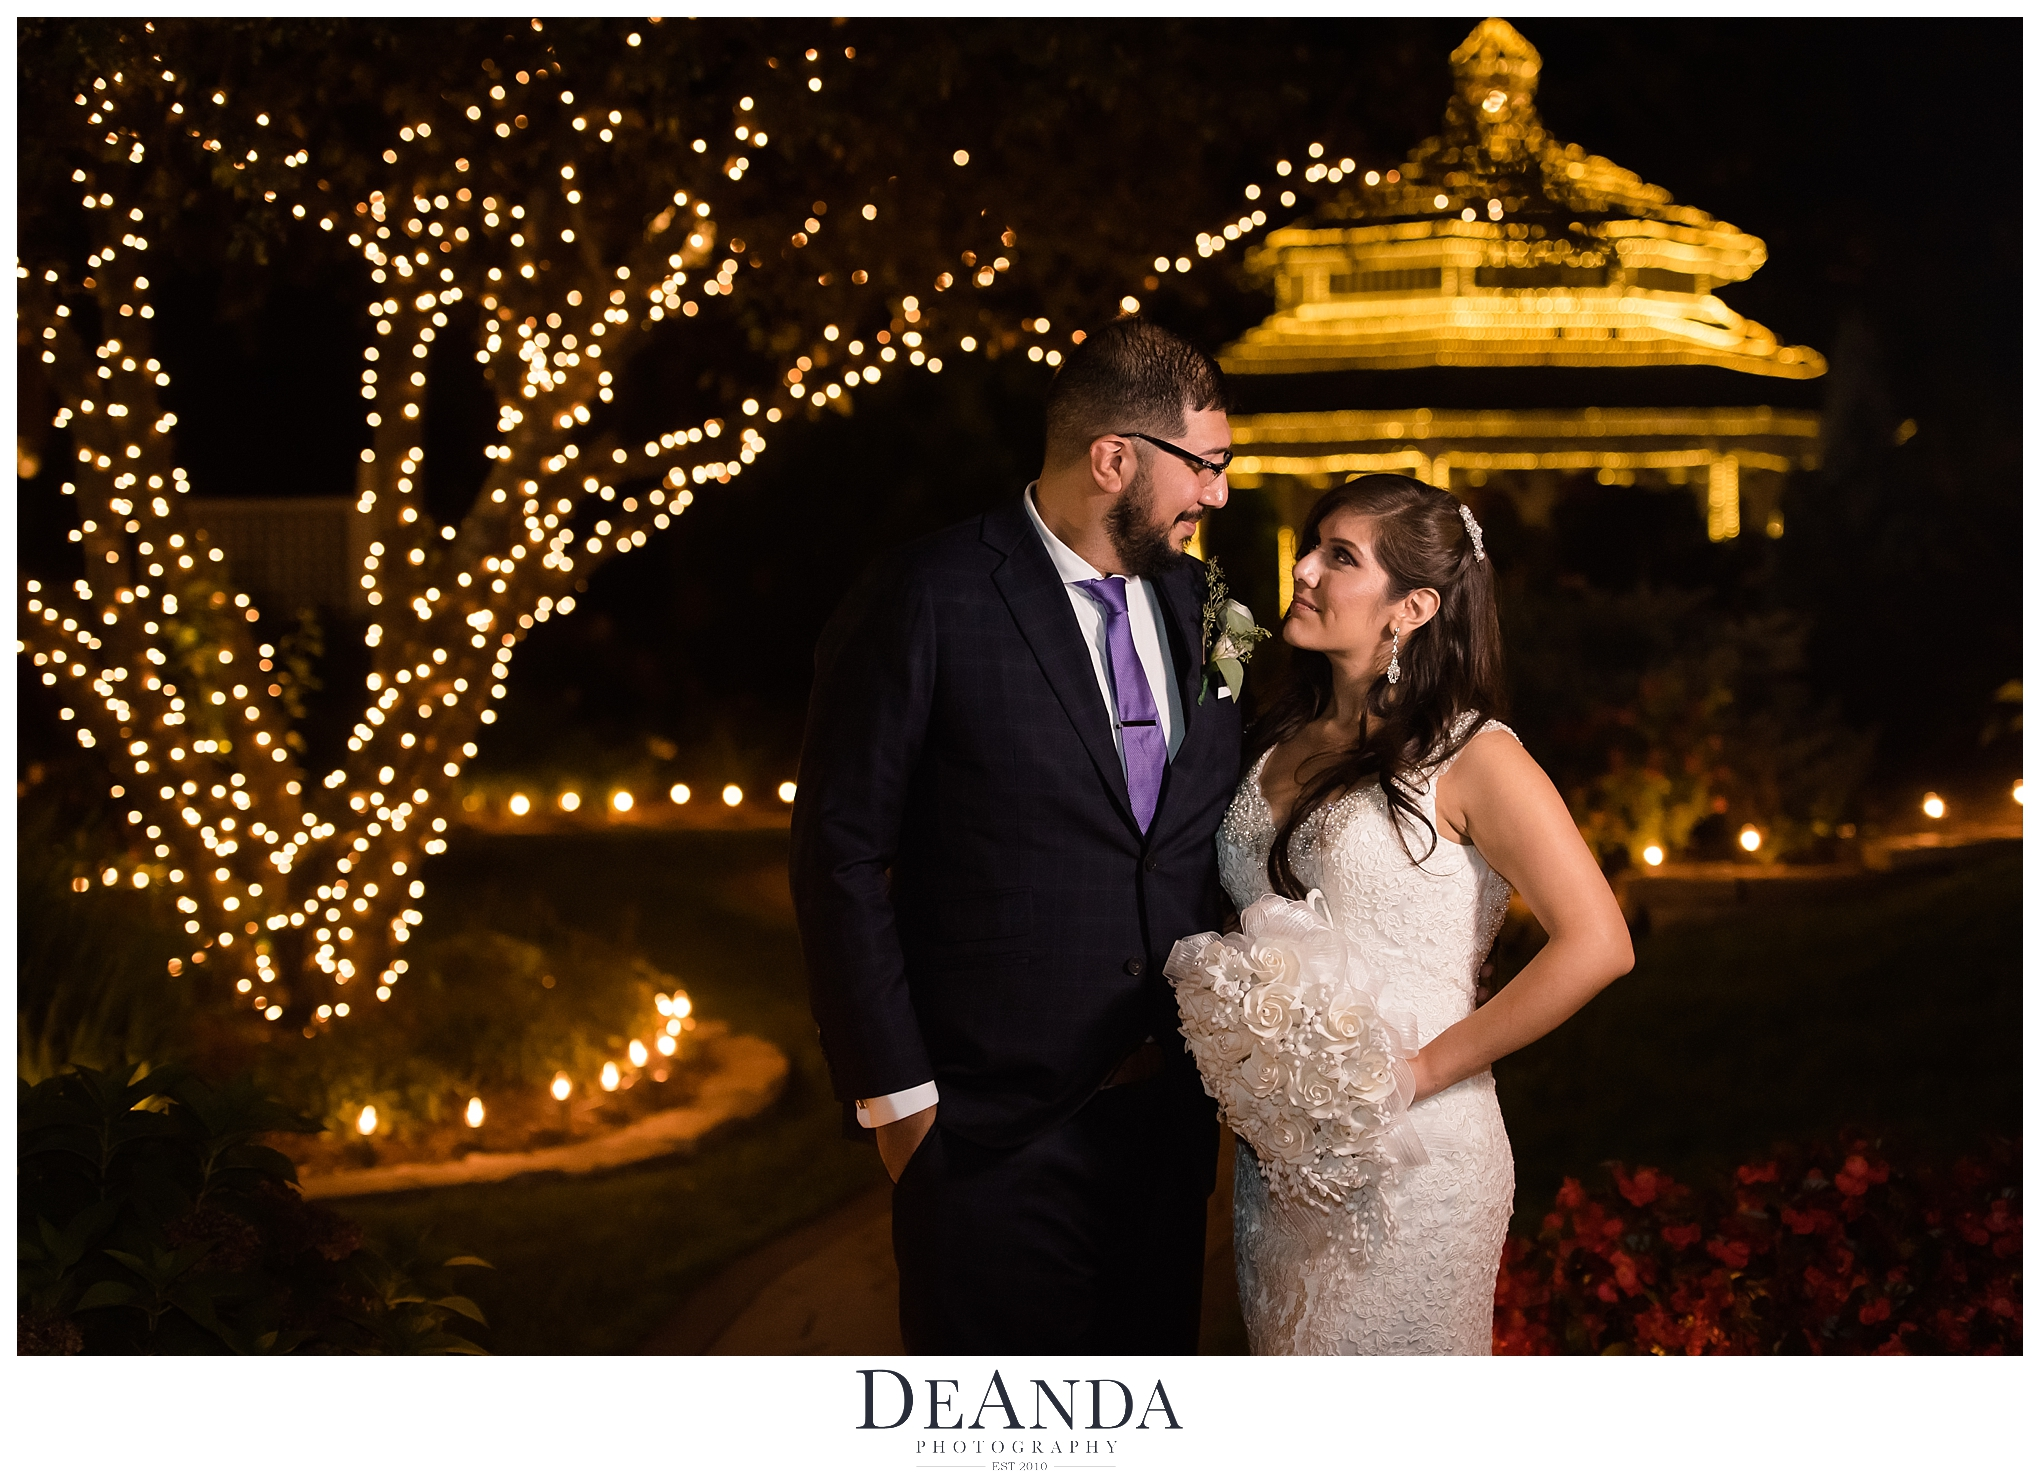 nightime photo of bride and groom